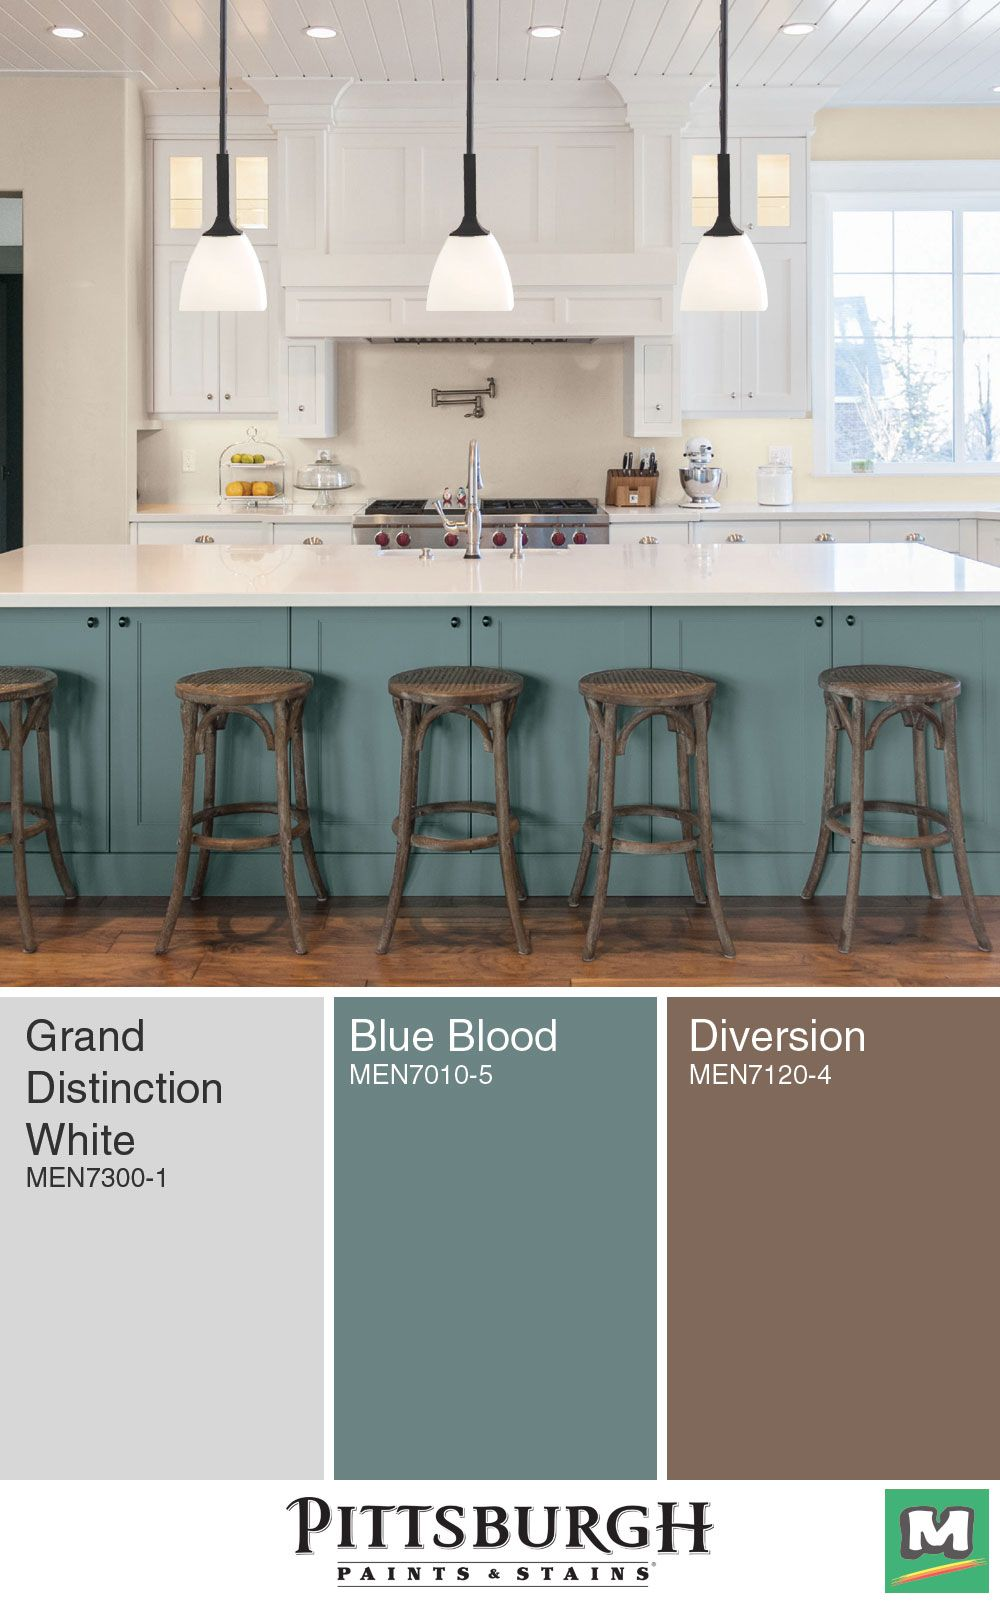 Create A Modern Farmhouse Kitchen With This Color Palette From Pittsburgh Paint Farmhouse Kitchen Colors Colorful Kitchen Decor Painted Kitchen Cabinets Colors